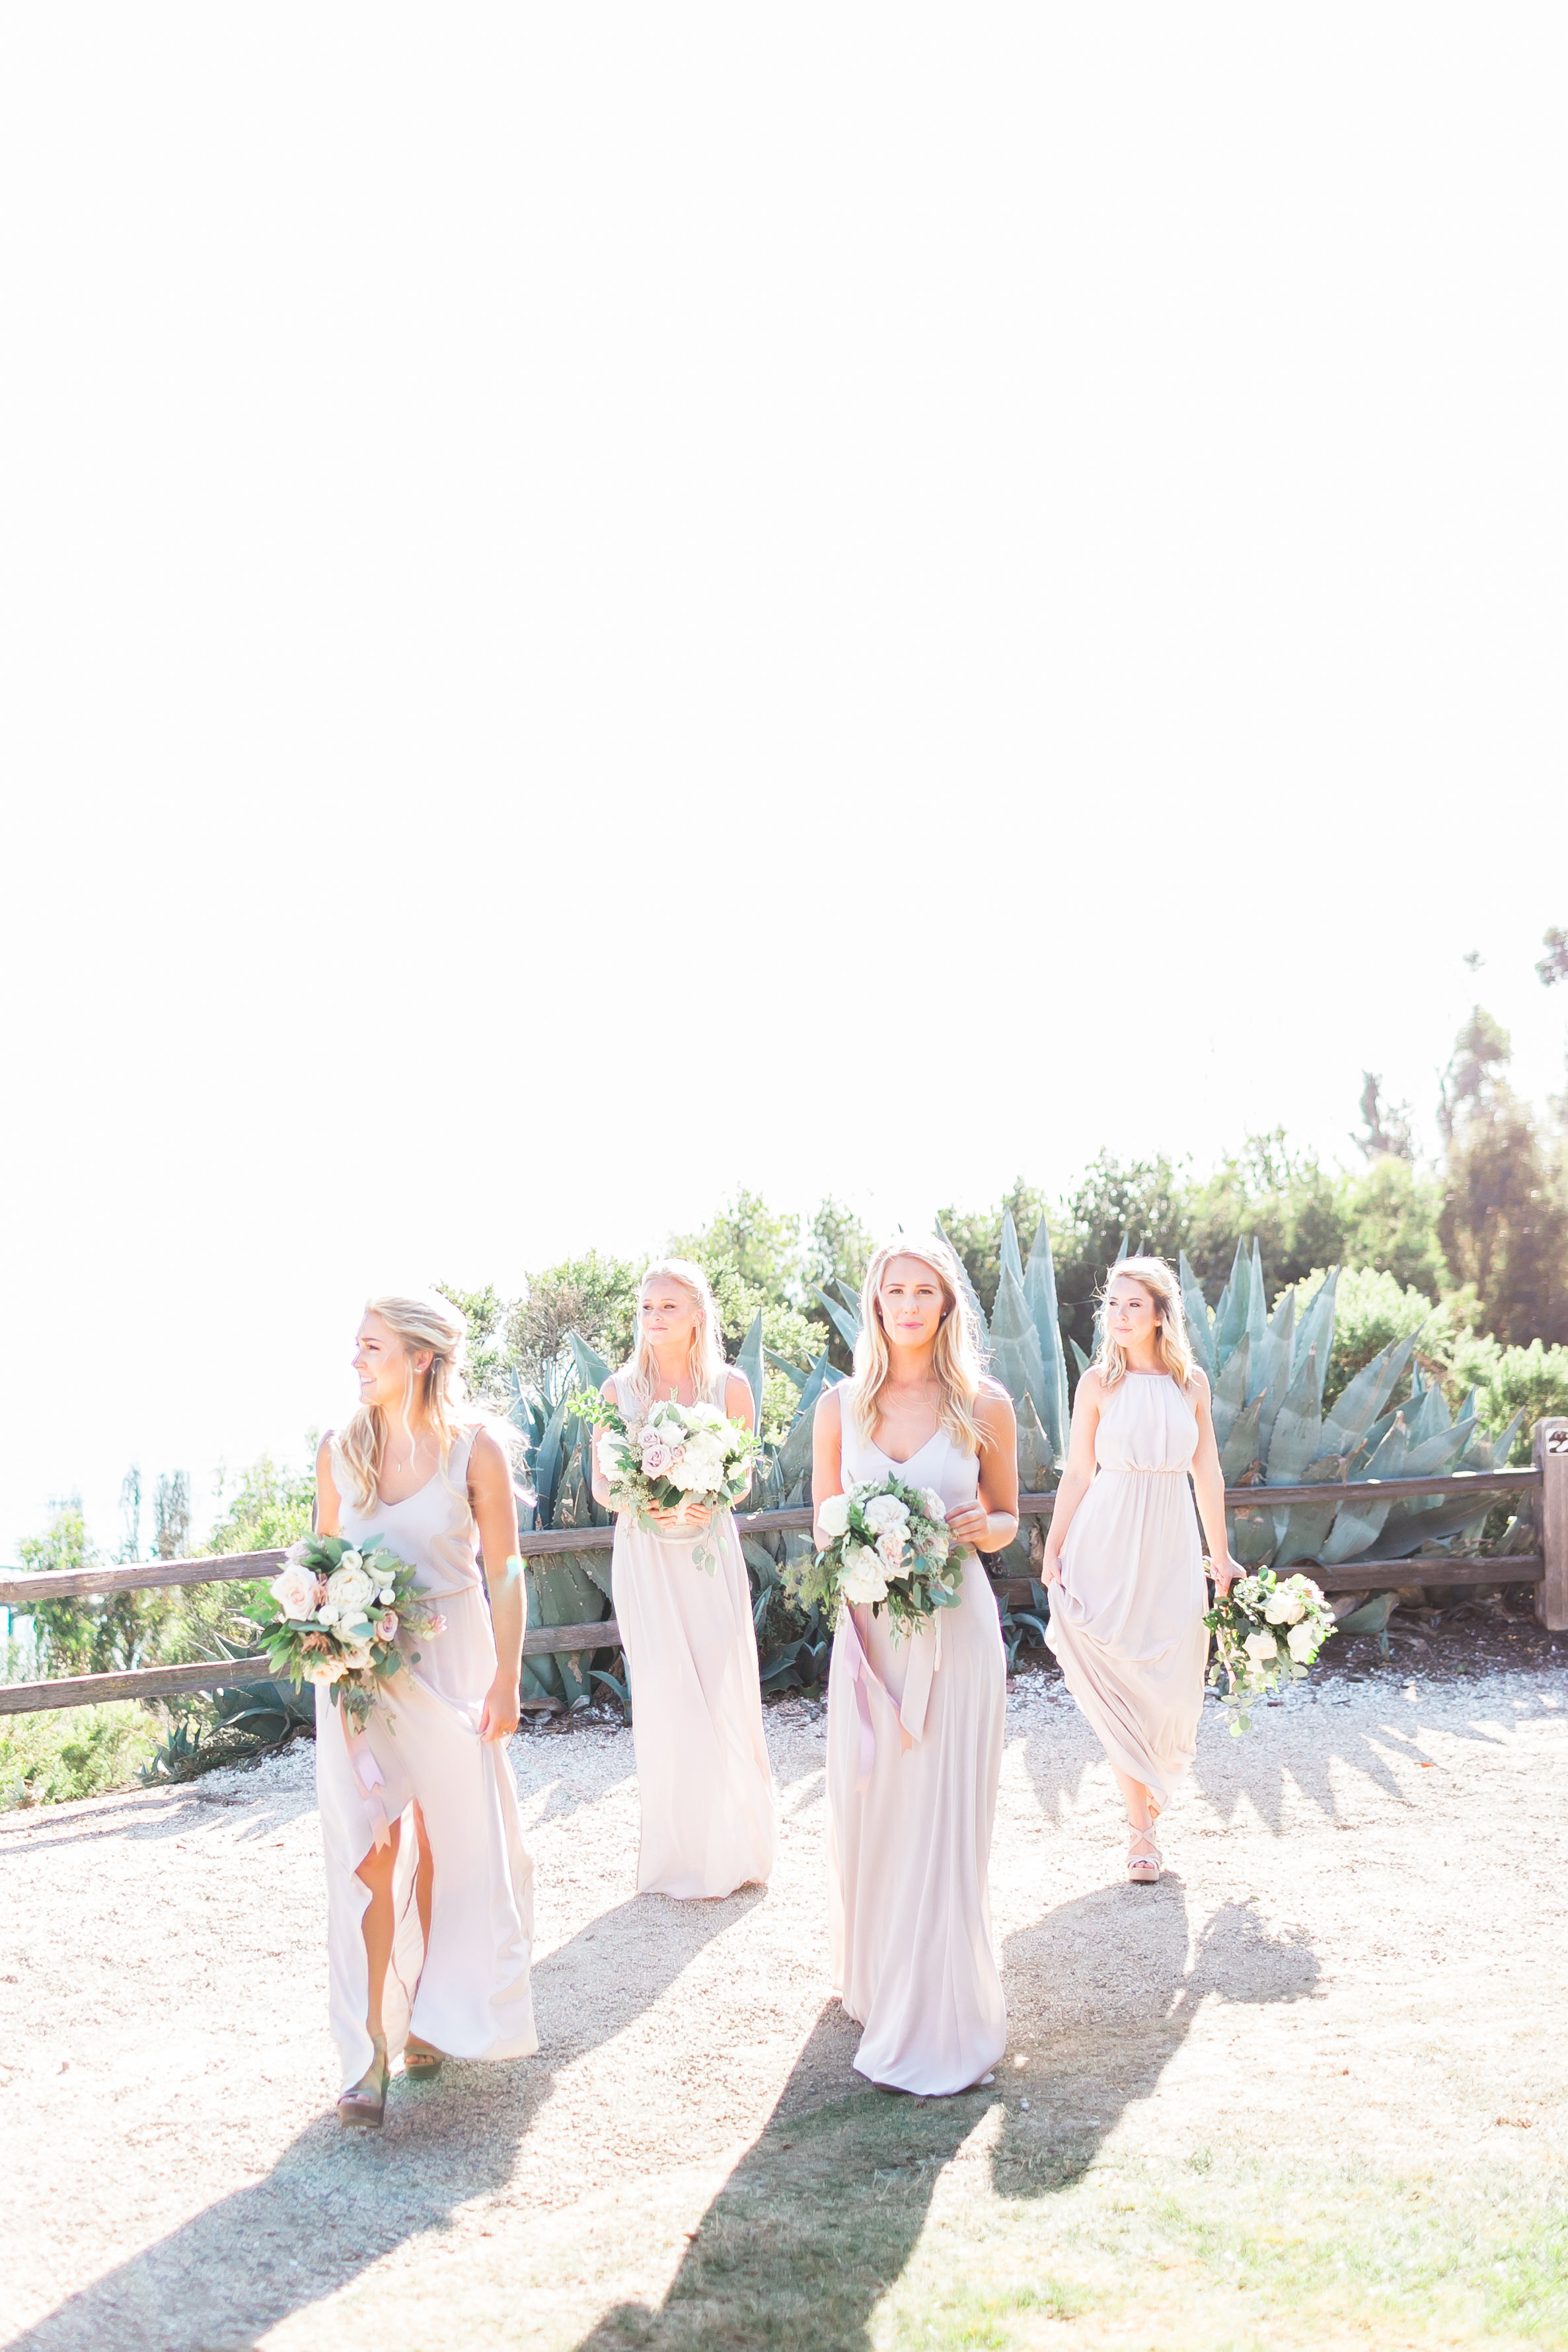 The blondest bridesmaids you ever did see!    Destination Wedding Planner  ANDREA EPPOLITO EVENTS  · Images by  J.ANNE P  HOTOOGRAPHY  · Video  HOO FILMS  · Venue Ritz Carlton Bacara Santa Barbara ·Gown MONIQUE LHULLIER ·Bridesmaids Dresses  SHOW ME YOUR MUMU ·Stationery  SHE PAPERIE ·Bride's Shoes  BADGLEY MISCHKA ·Hair and Makeup  TEAM HAIR AND MAKEUP · Floral  BLUE MAGNOLIA ·Linen  LA TAVOLA ·Decor Rentals  TENT MERCHANT ·Calligraphy  EBB ·Lighting  FIVE STAR AV ·Ice Cream Station  MCCONNELL'S ICE CREAM